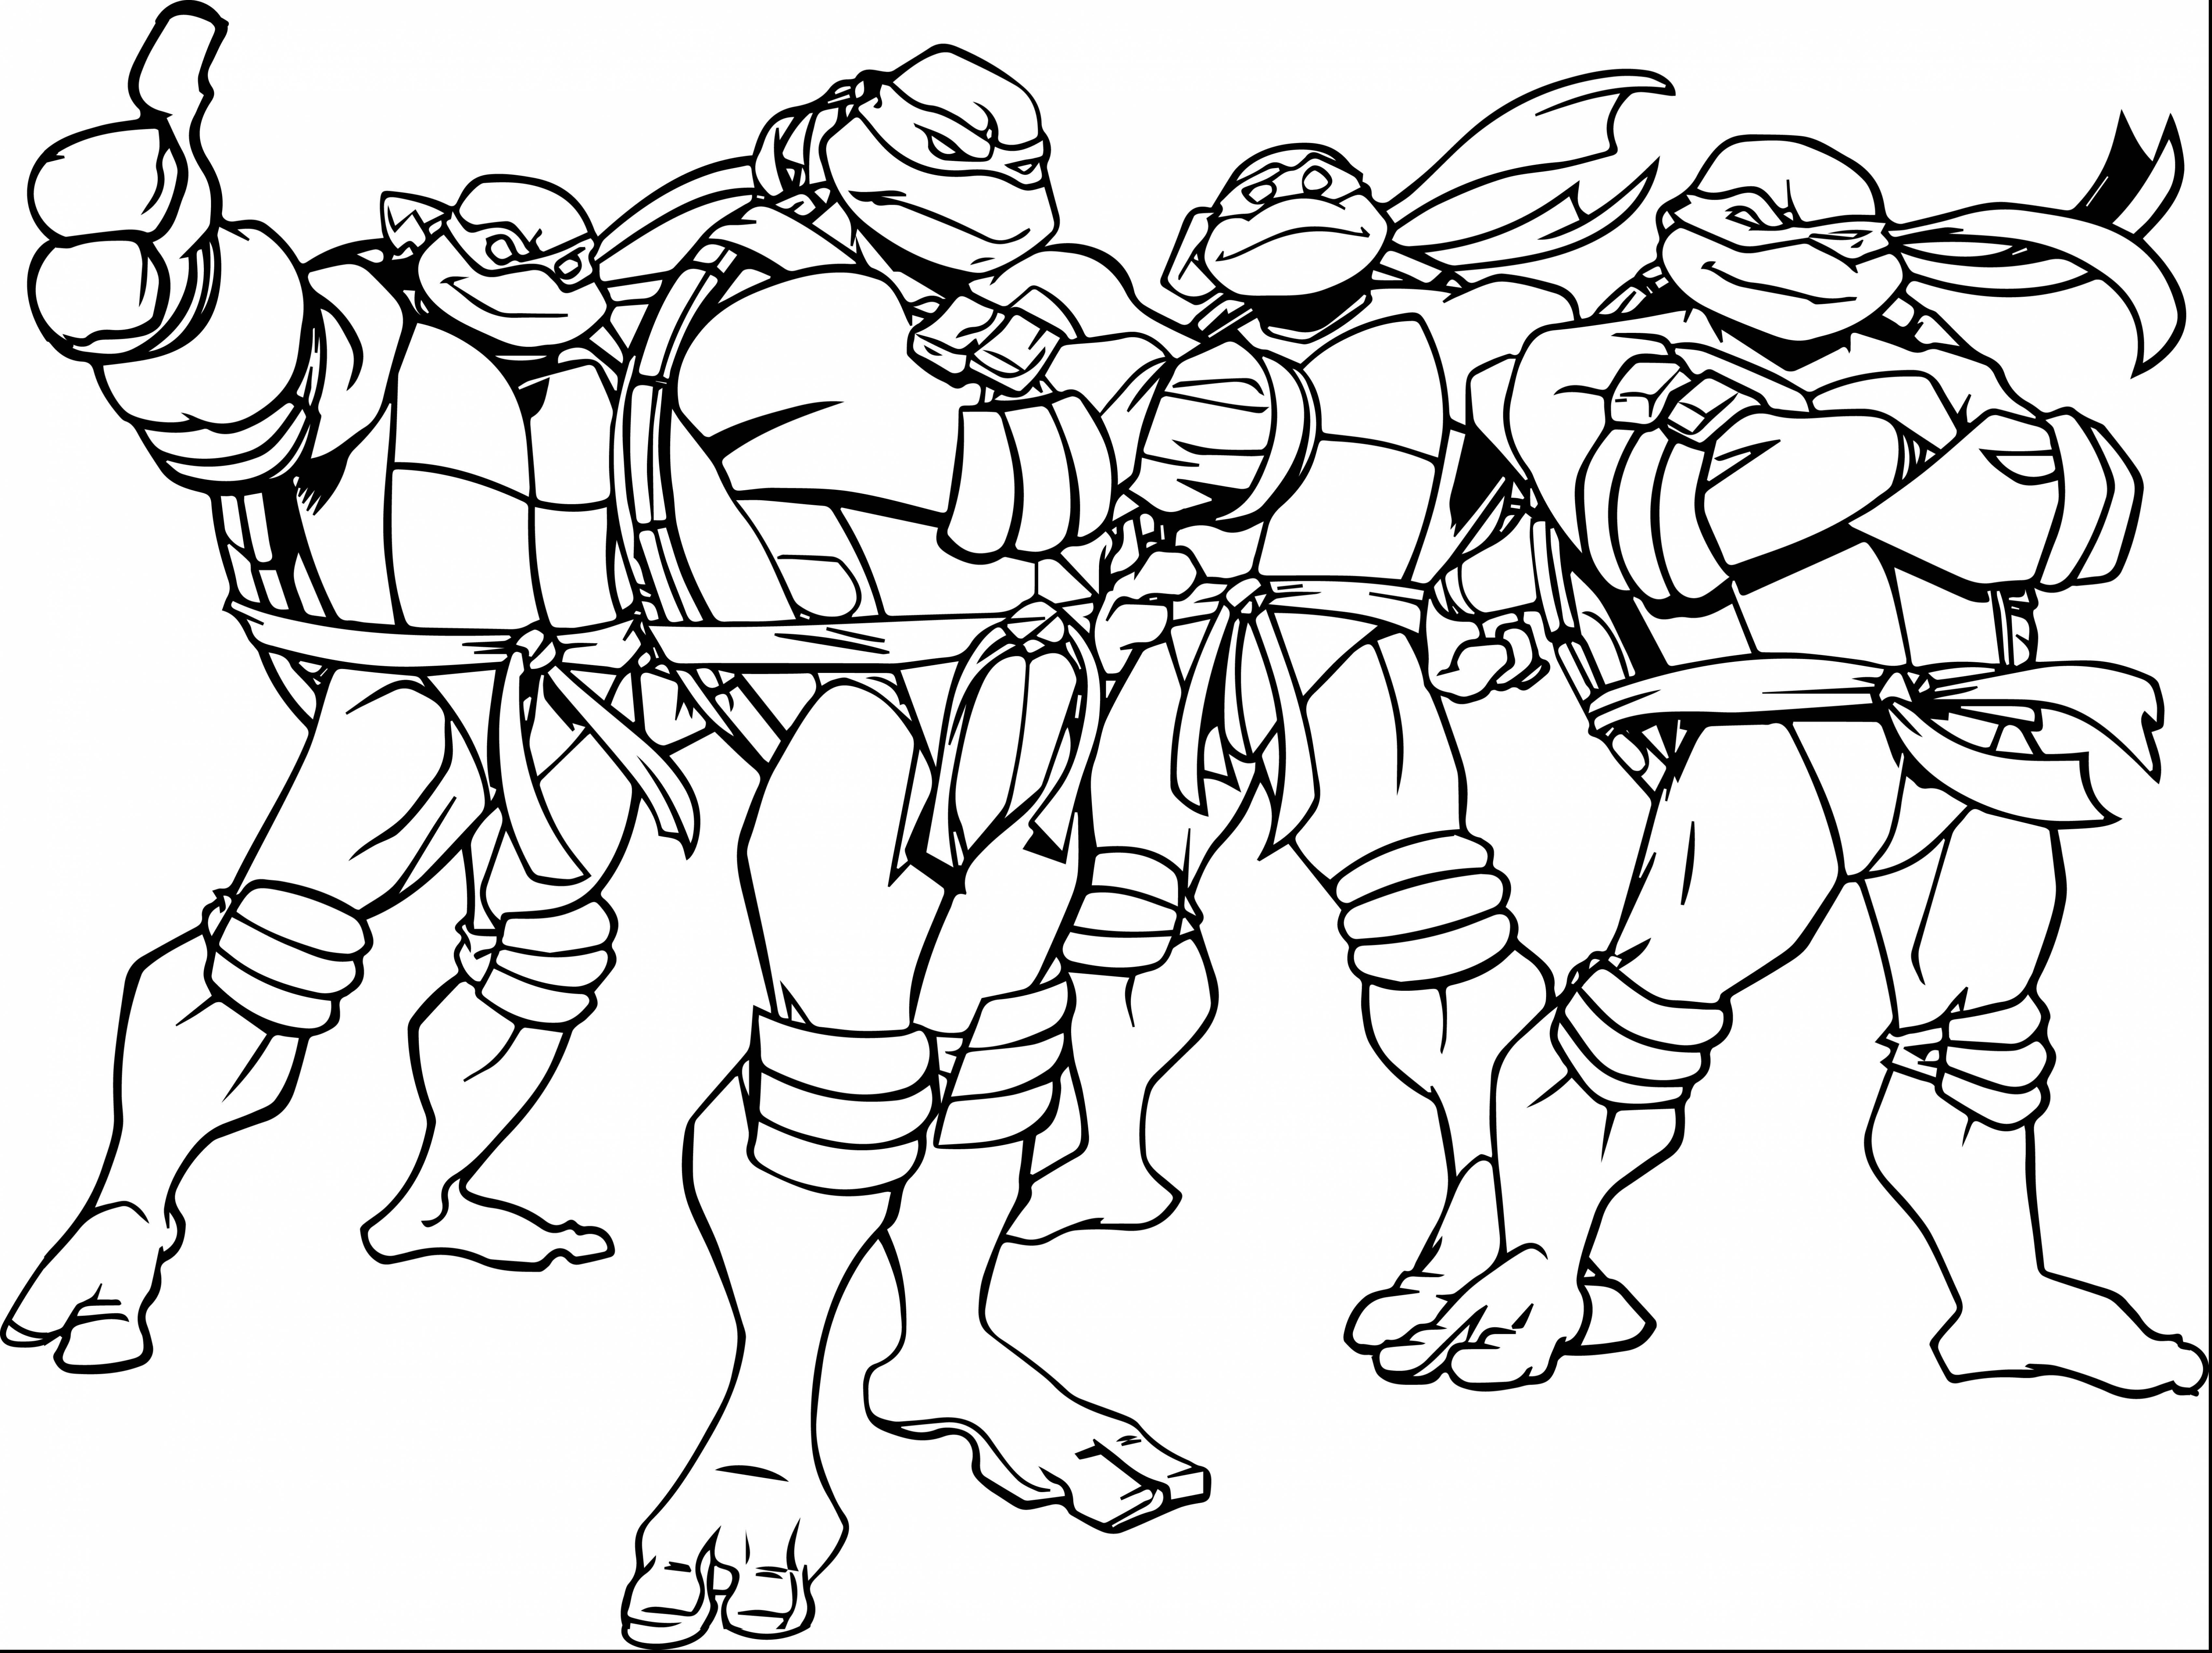 ninja turtles pictures 13 things you should know about teenage mutant ninja turtles pictures ninja